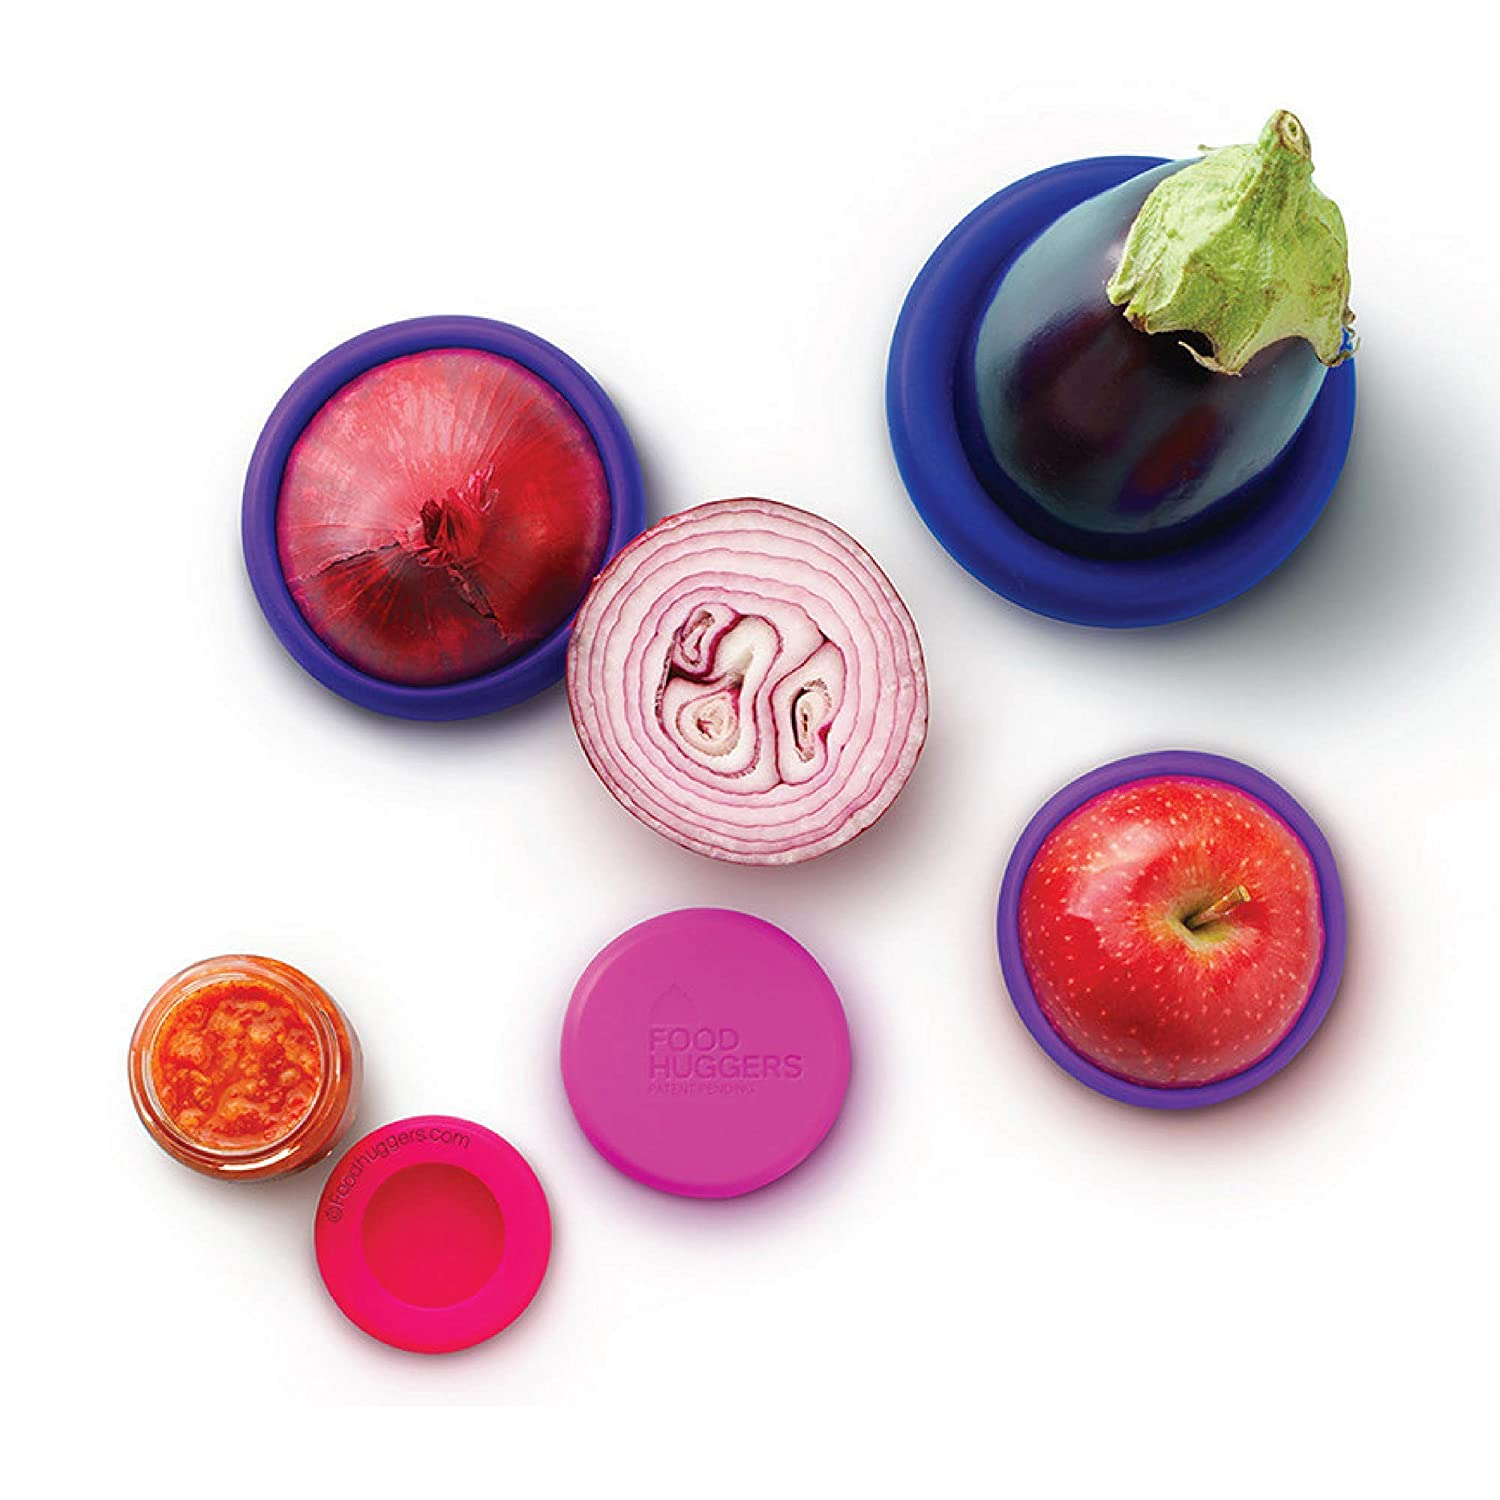 Food Huggers Reusable Silicone Food Savers Set of 5 (Bright Berry) - Patented Product